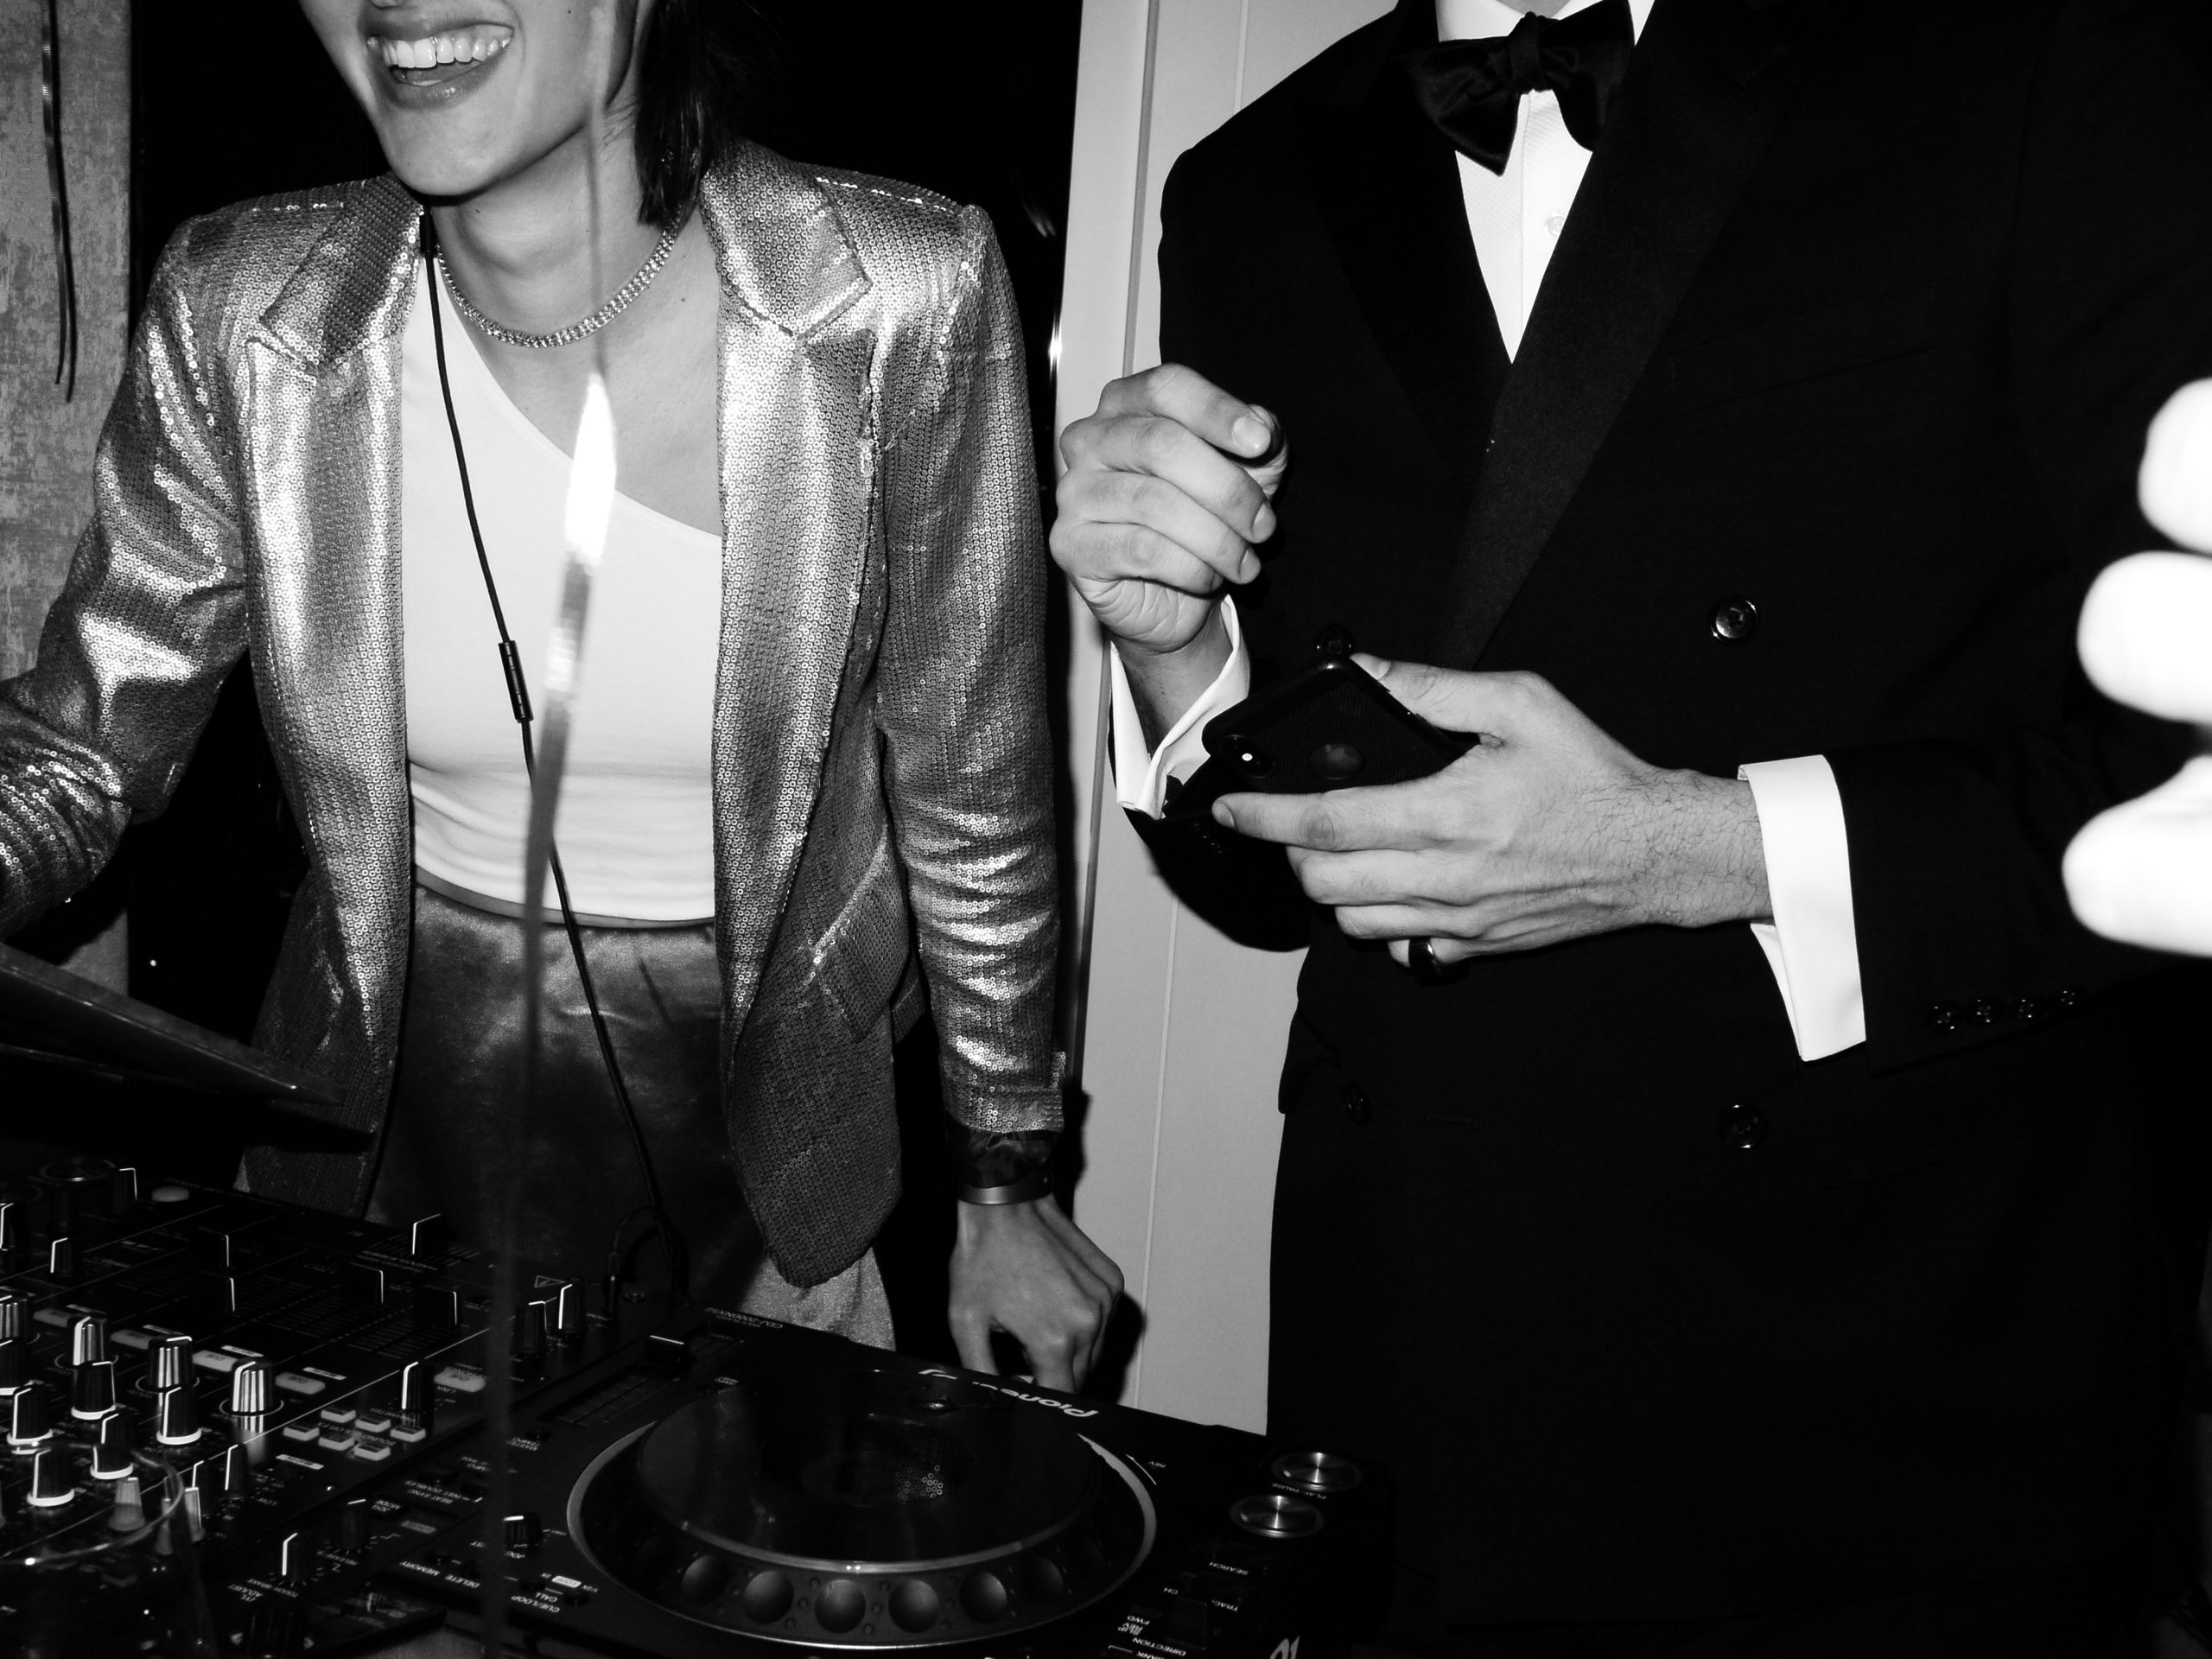 female dj smiling with man in tuxedo at party